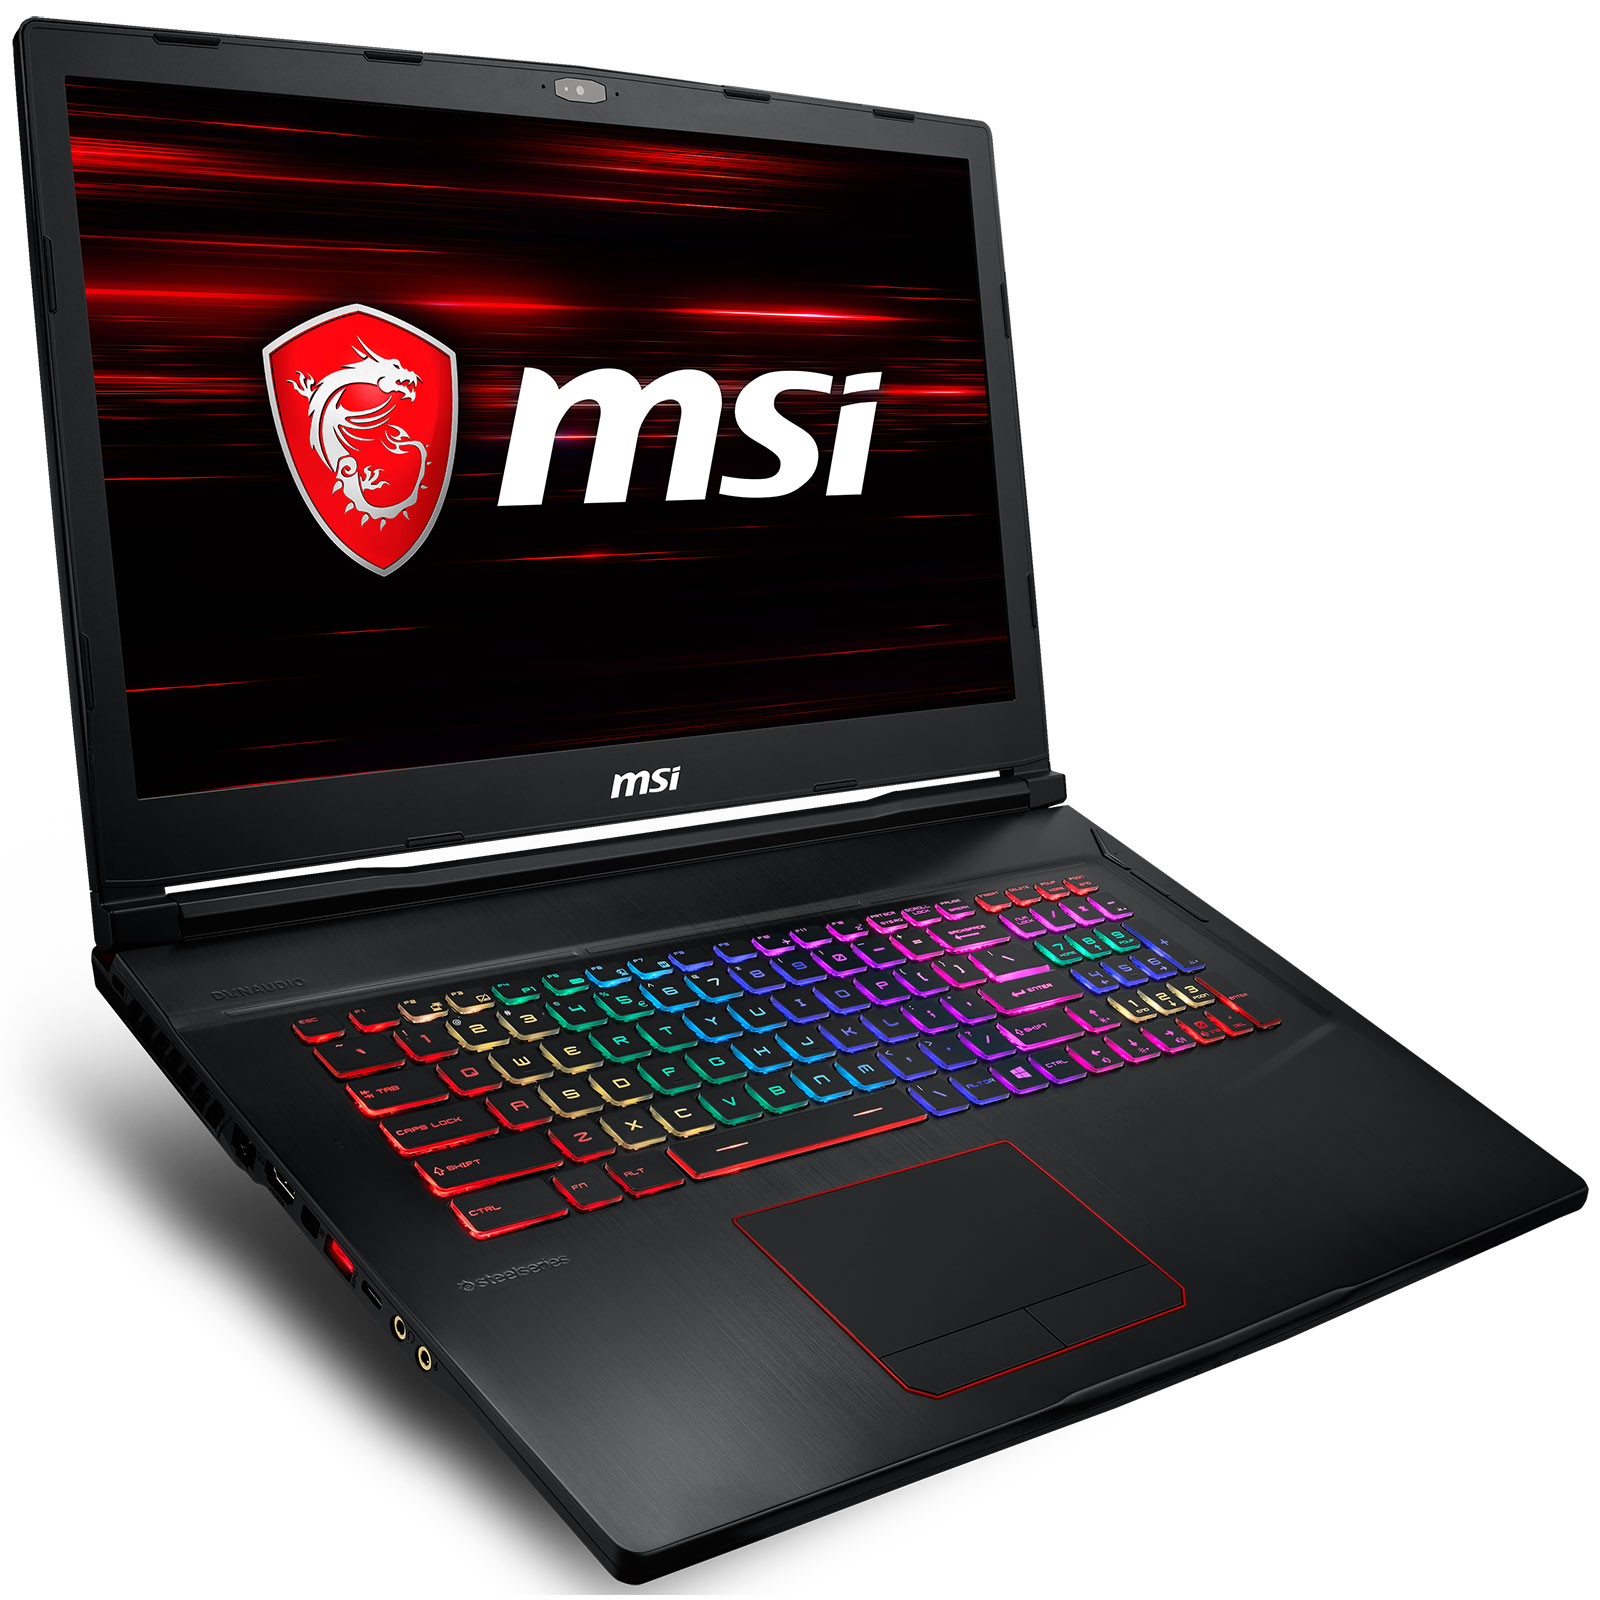 "PC portable MSI GE73 8RF-288FR Raider RGB Intel Core i7-8750H 8 Go SSD 512 Go + HDD 1 To 17.3"" LED Full HD 120 Hz NVIDIA GeForce GTX 1070 8 Go Wi-Fi AC/Bluetooth Webcam Windows 10 Famille 64 bits (garantie constructeur 2 ans)"